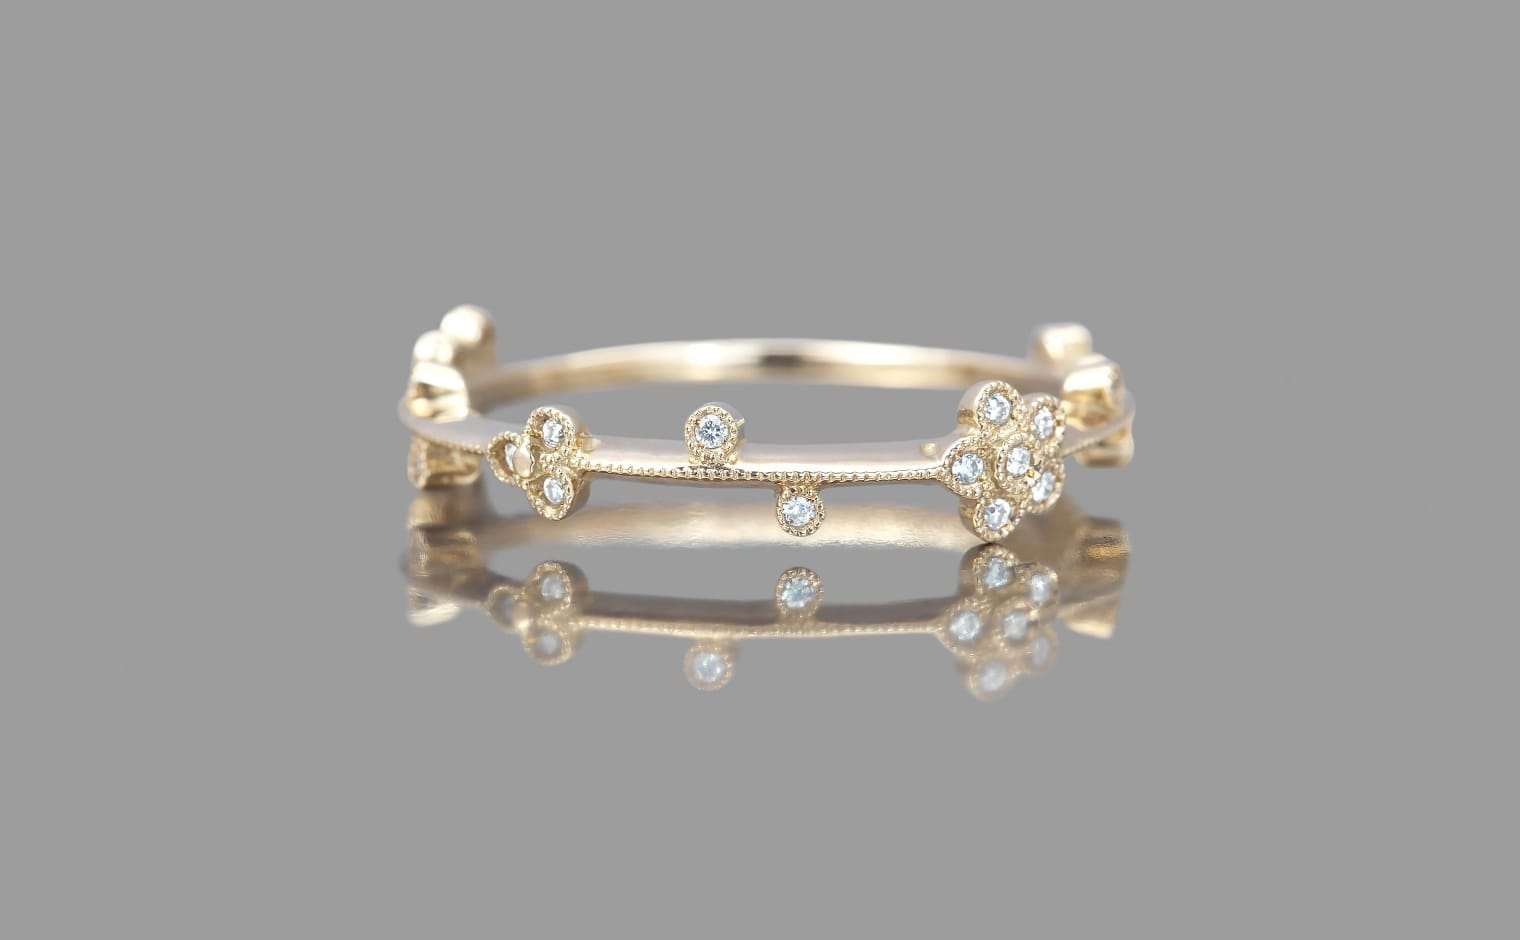 Little Diamond Flowers Ring Throughout Newest Classic Daisy Flower Band Rings (View 14 of 25)